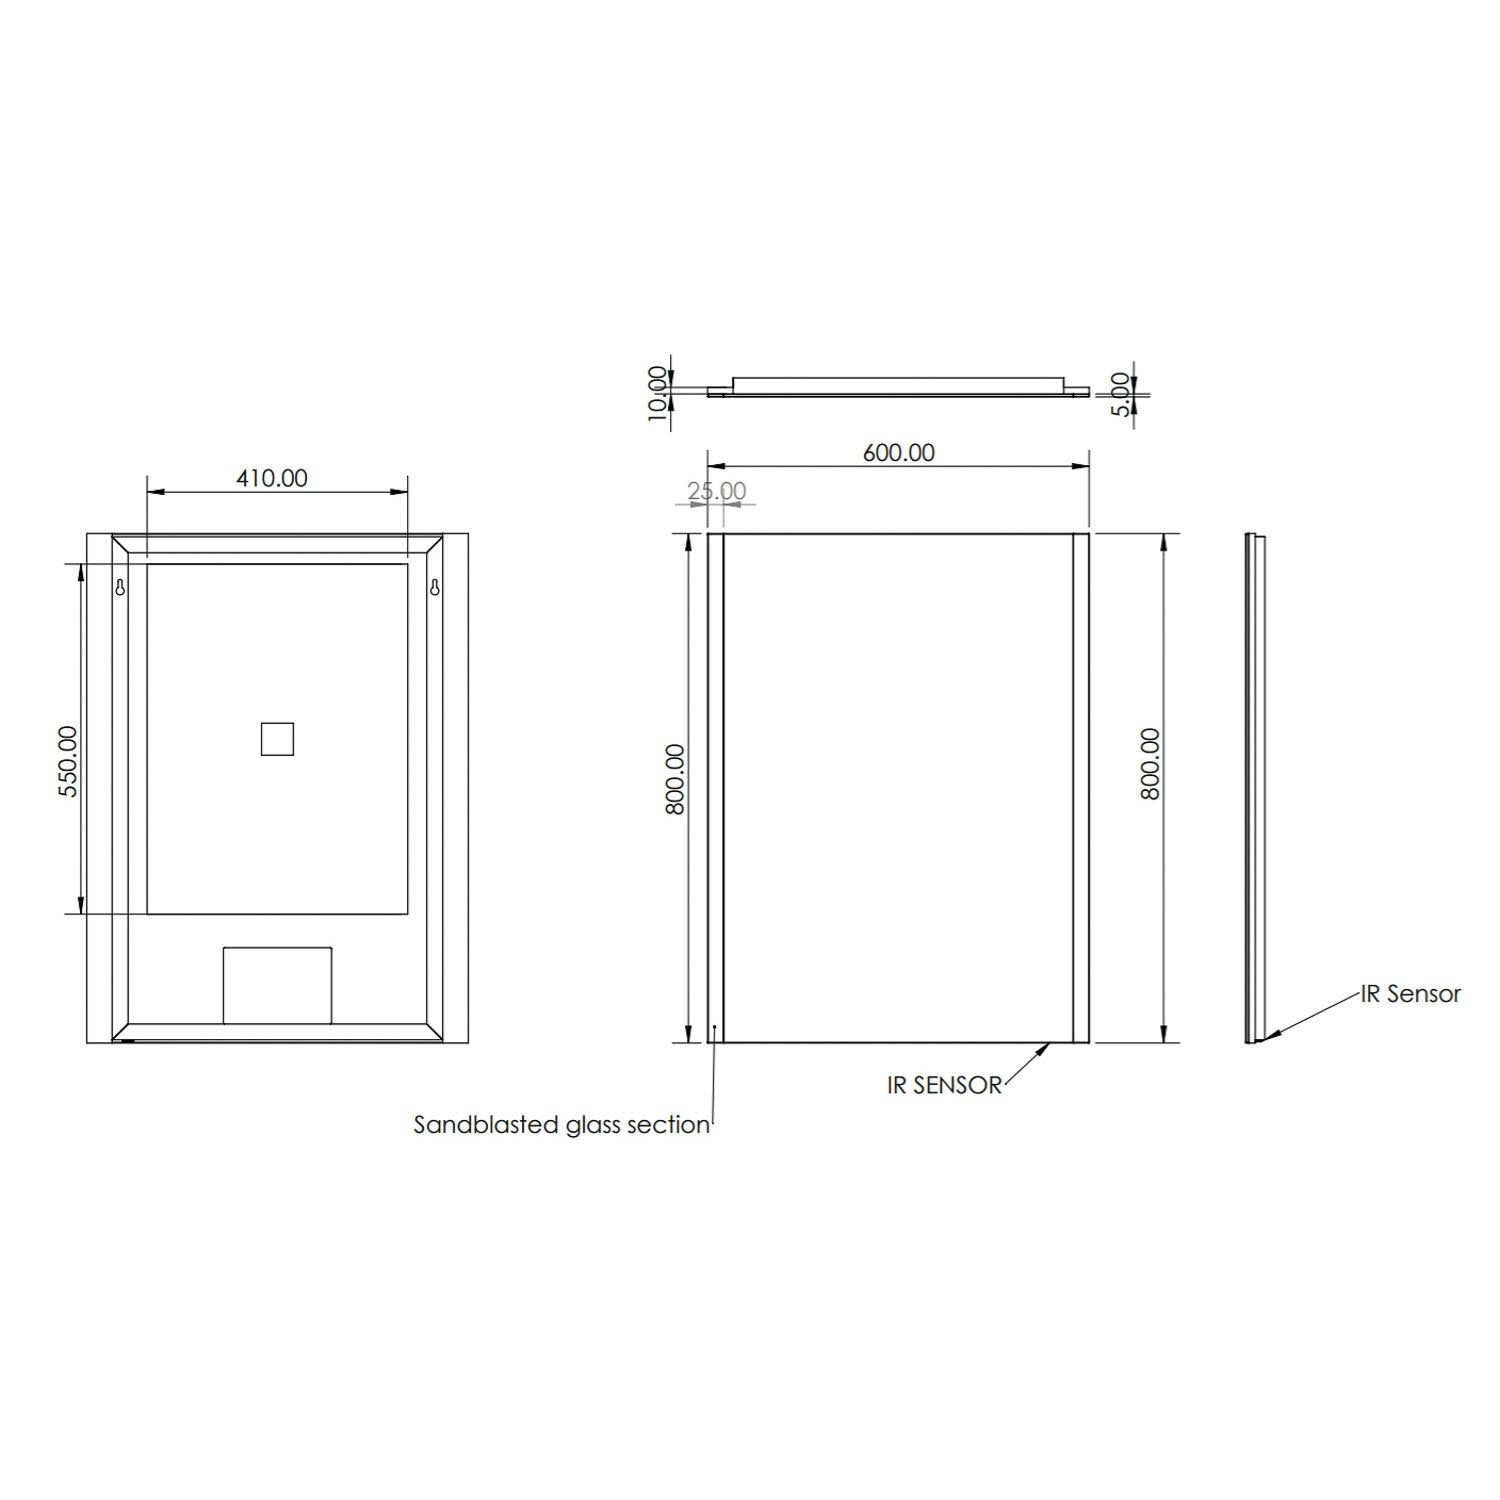 800x600mm Side Lit LED Light Mirror dimensional drawing